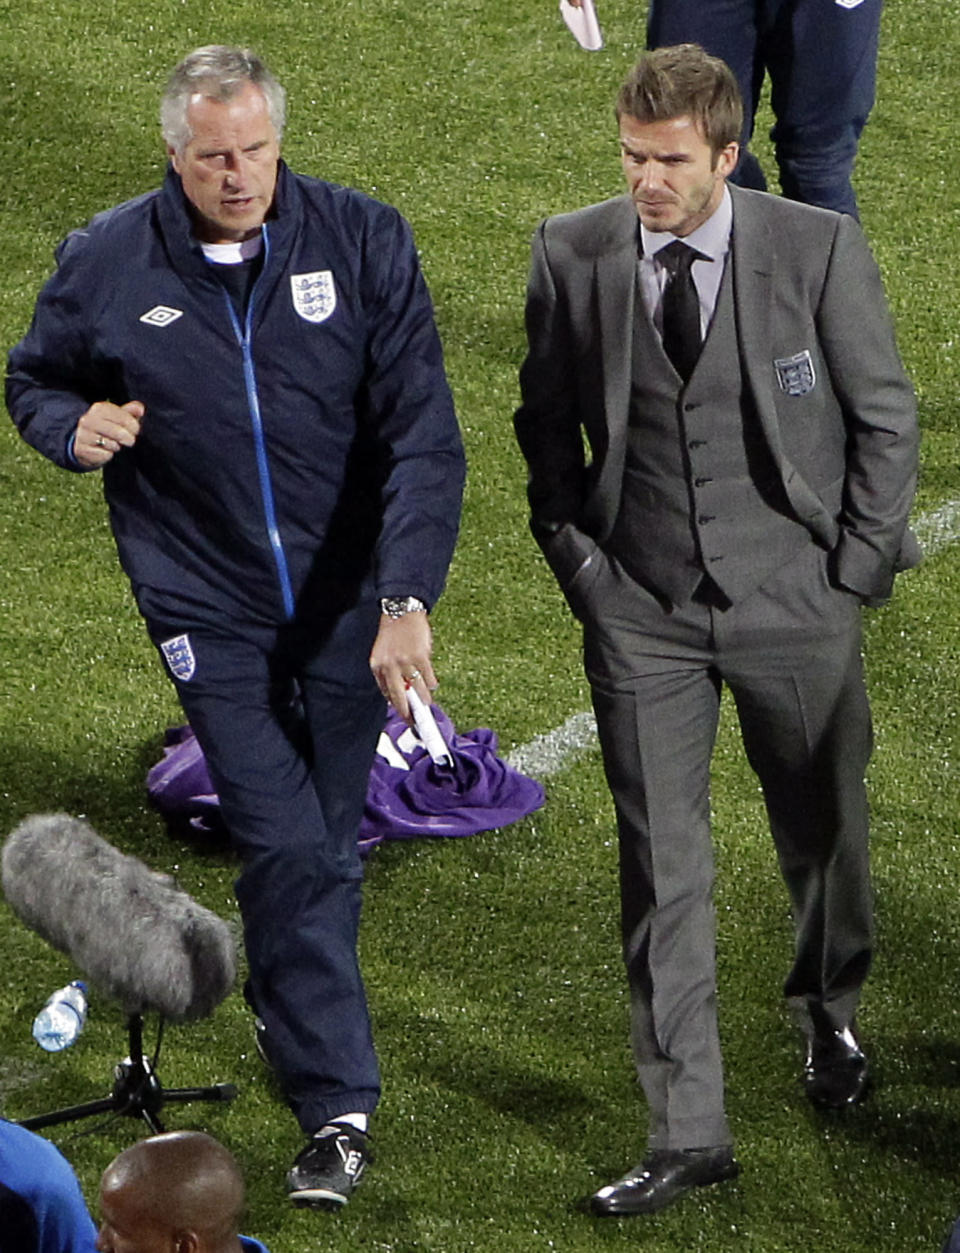 FILE - In this Saturday, June 12, 2010 file photo, England's David Beckham, right, leaves the pitch with goalkeeper coach Ray Clemence after the World Cup group C soccer match between England and the United States at Royal Bafokeng Stadium in Rustenburg, South Africa. Ray Clemence, the former Liverpool, Tottenham and England goalkeeper, has died. He was 72. The Football Association confirmed the news Sunday, Nov. 15, 2020 without giving a cause of death. (AP Photo/Tom Curley, File)